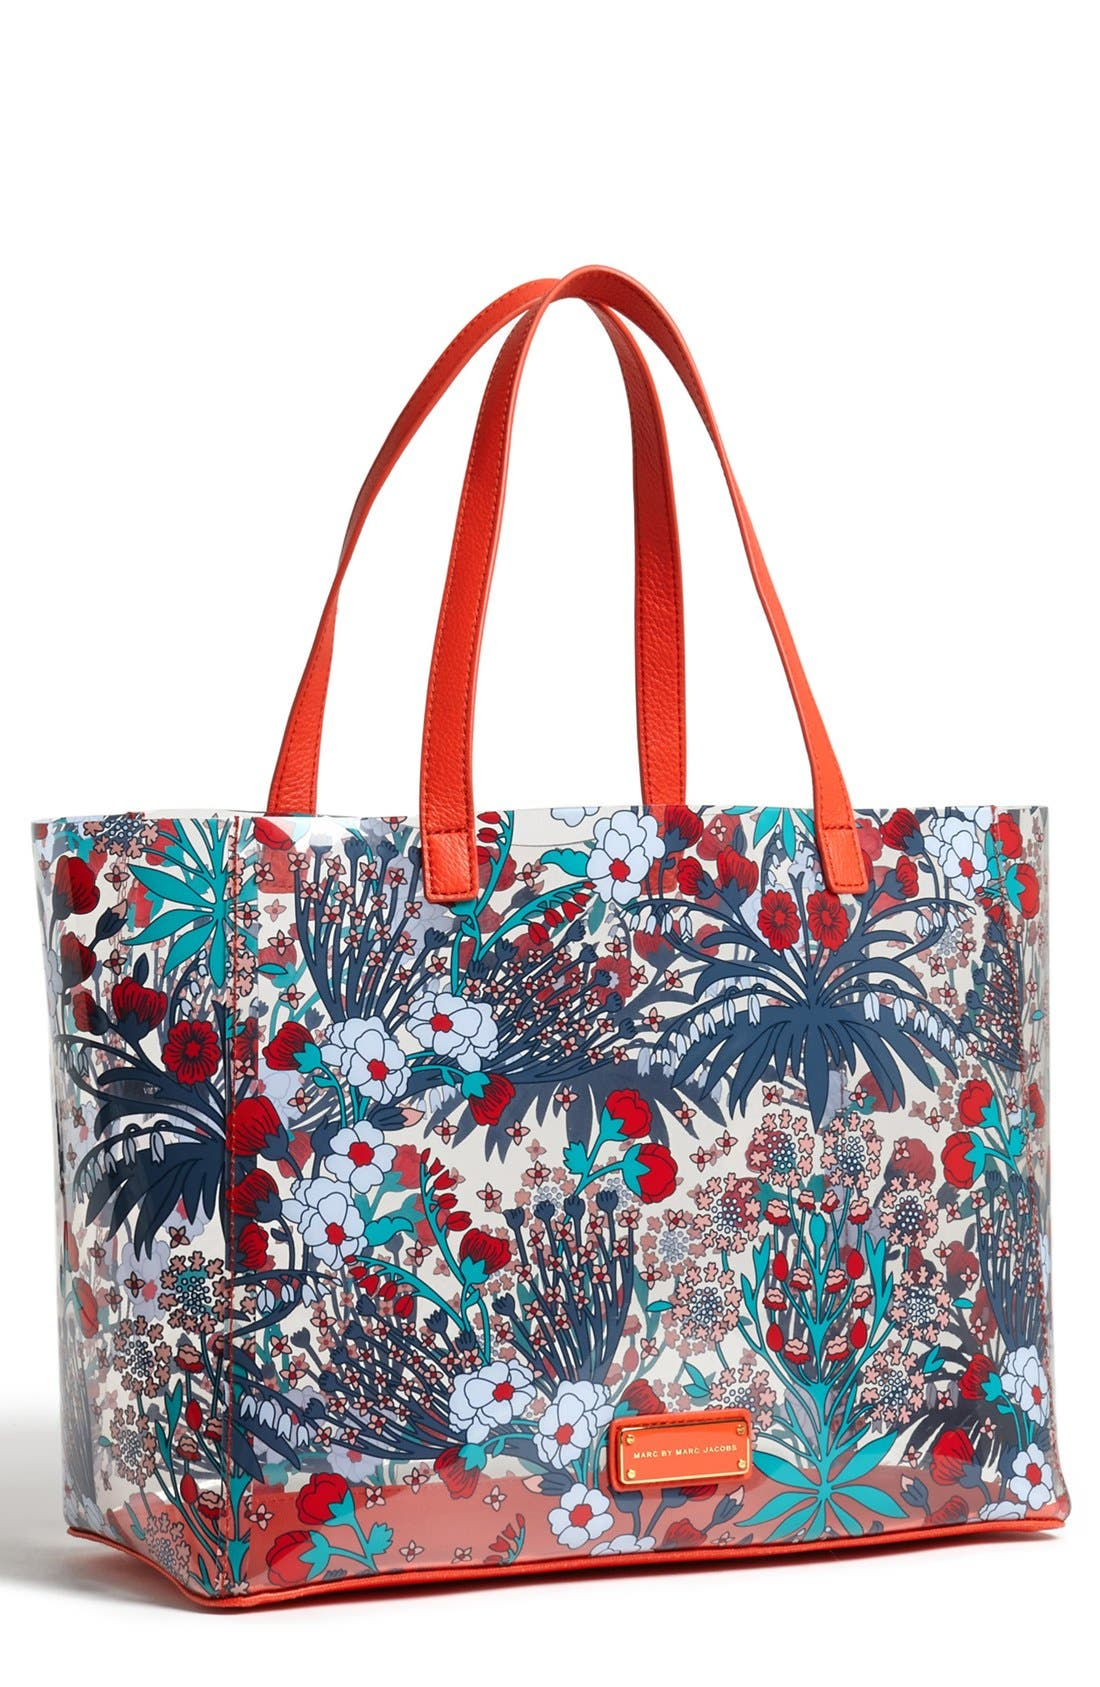 Main Image - MARC BY MARC JACOBS Transparent Floral Print Tote